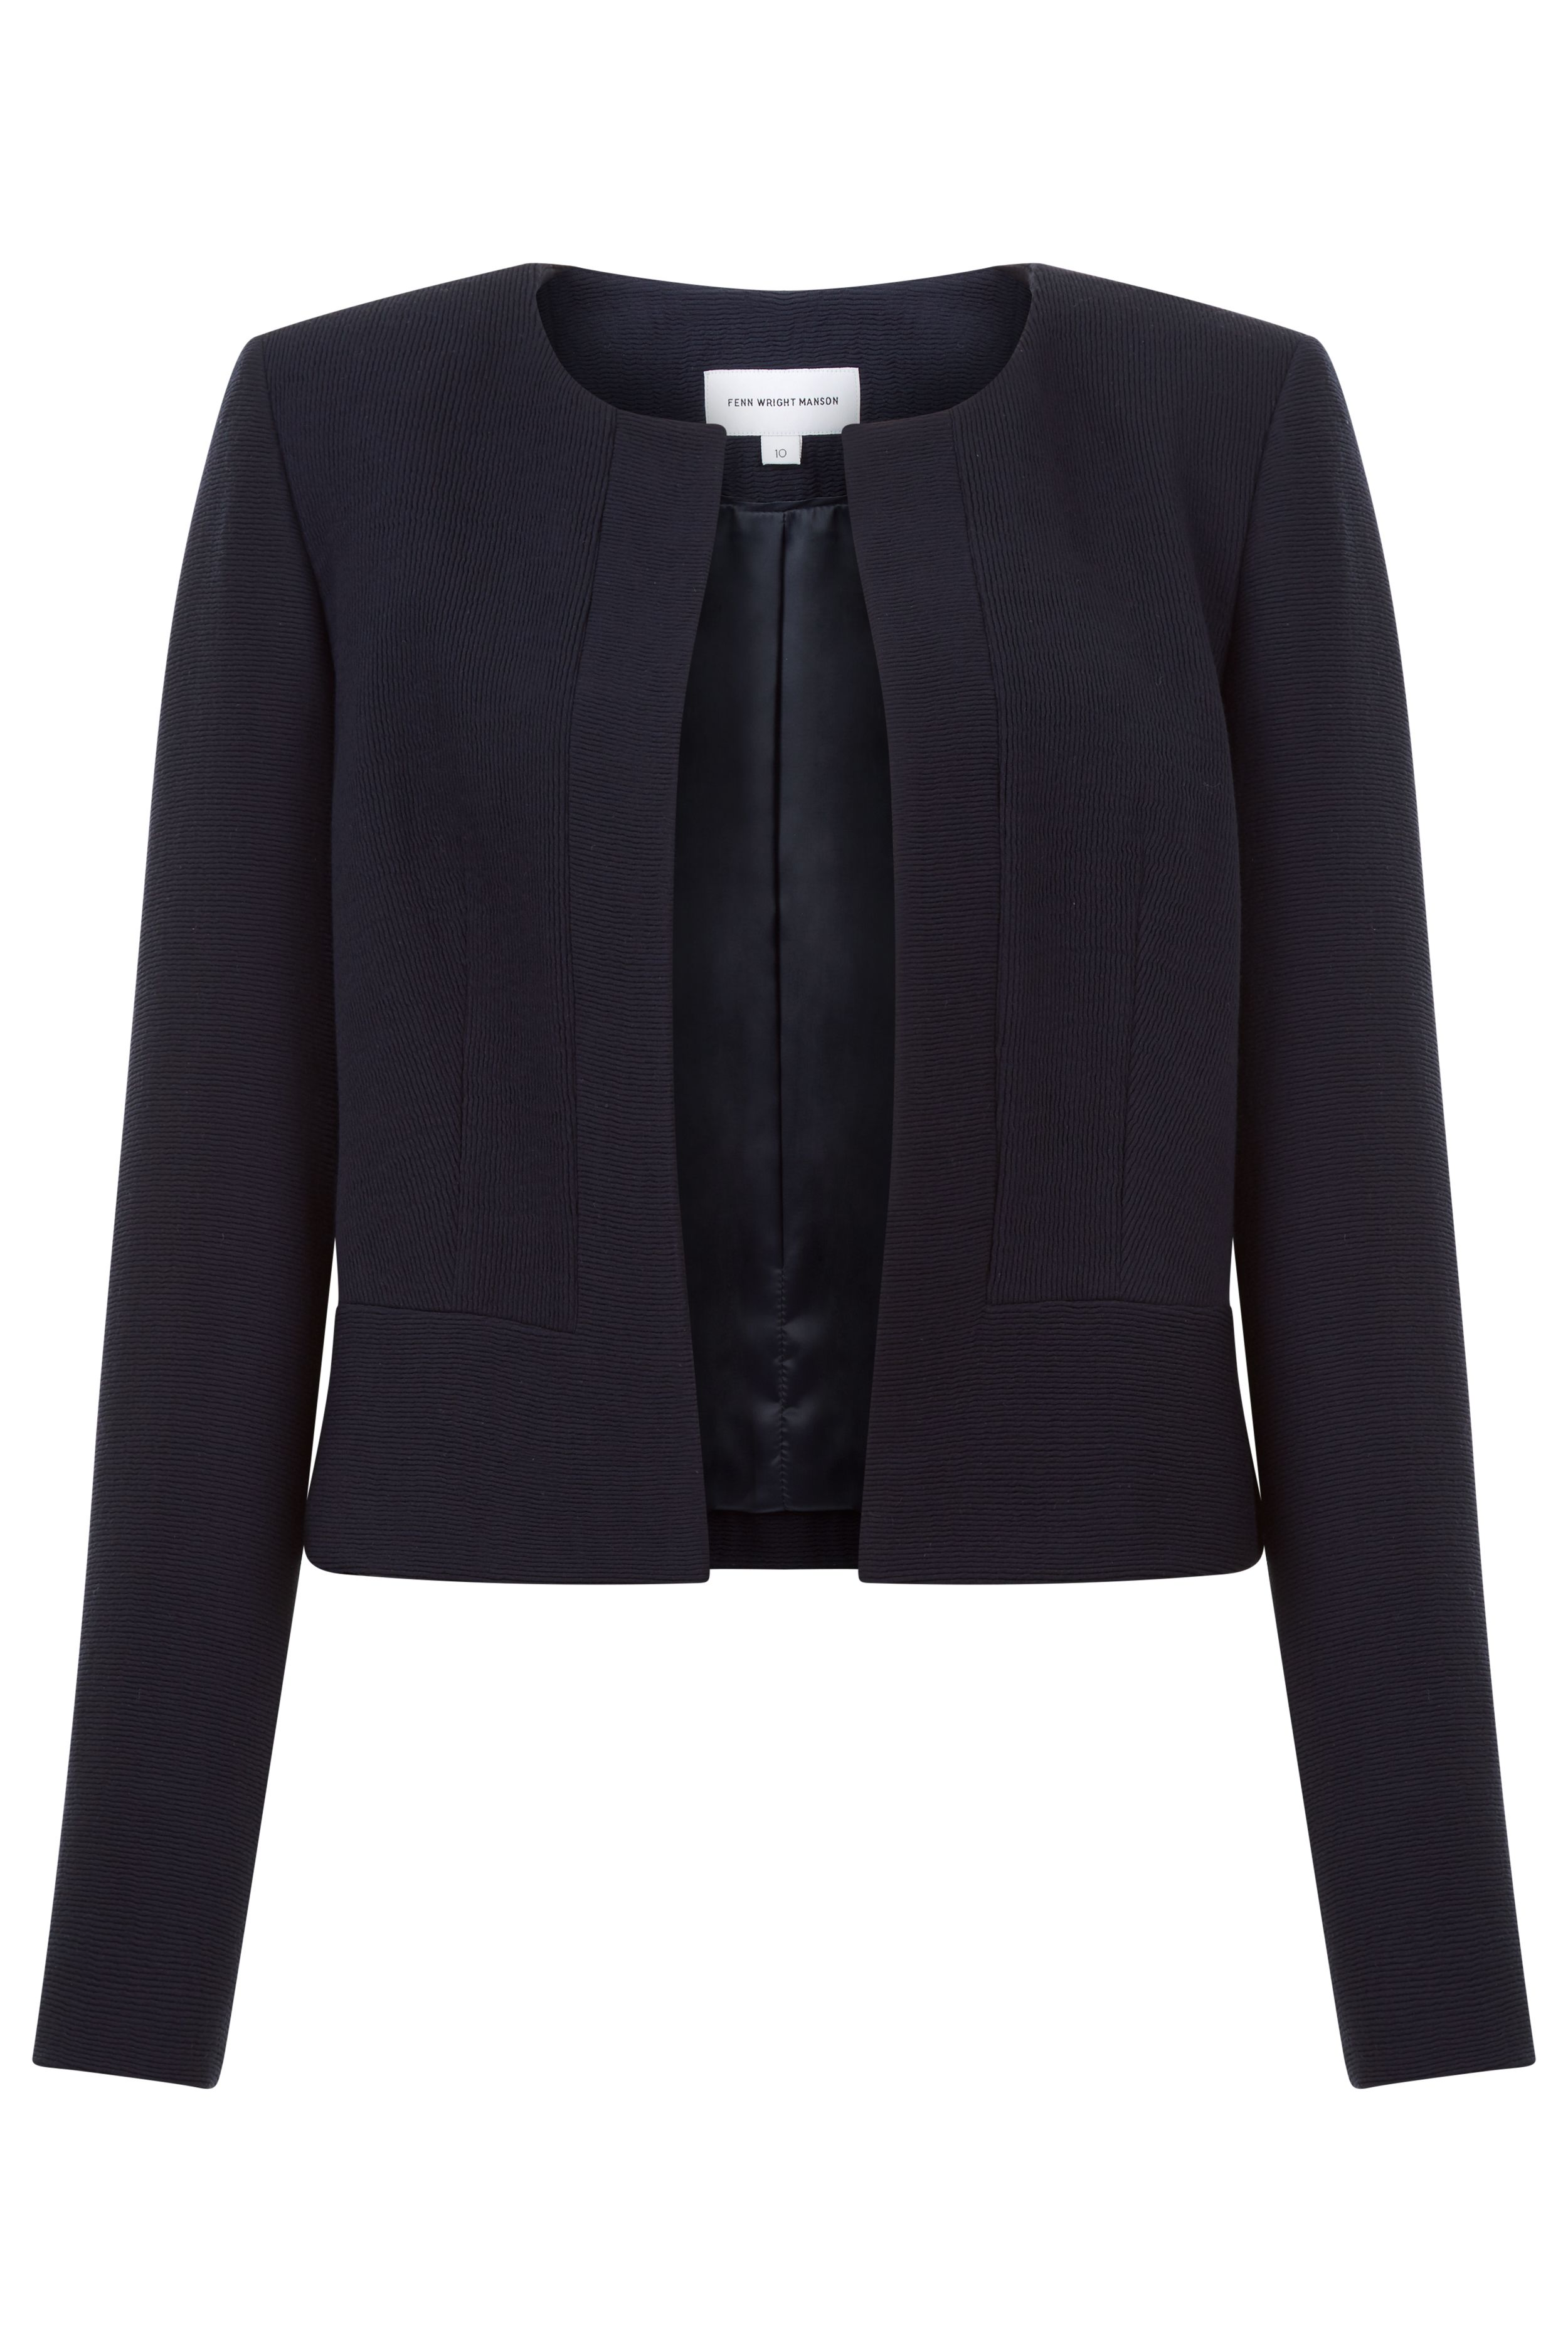 Fenn Wright Manson Valencia Jacket, Blue